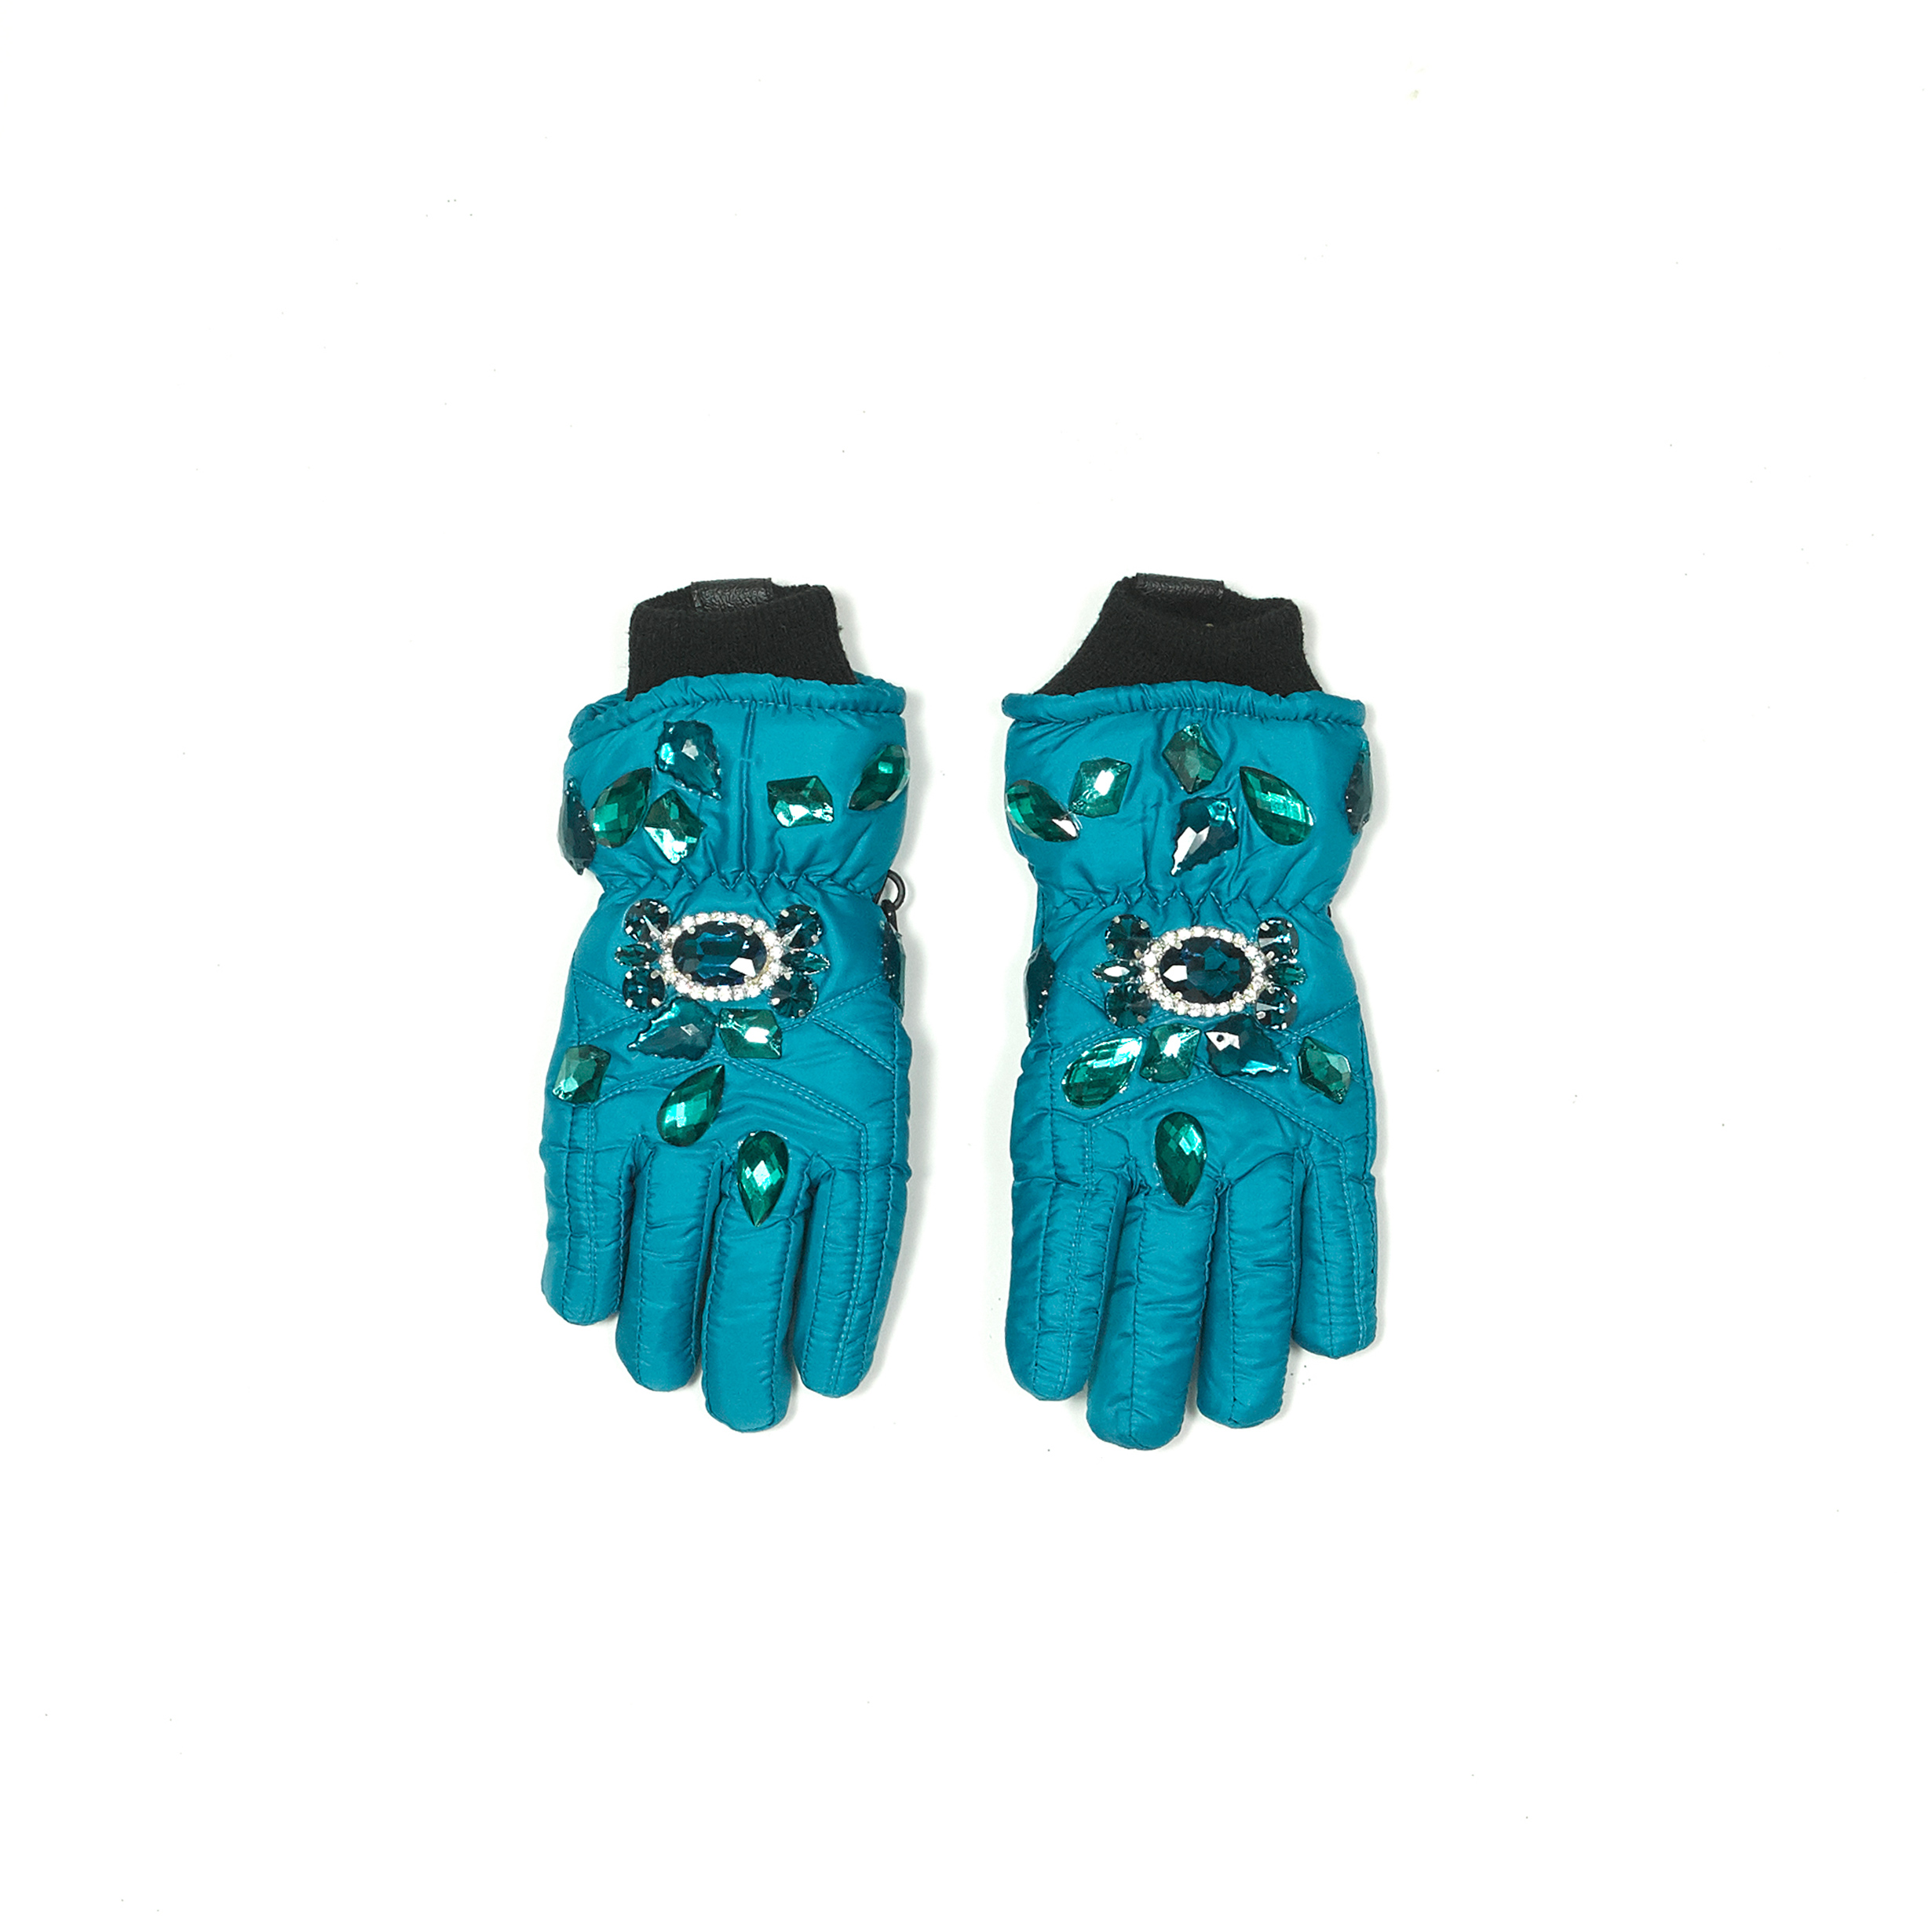 Embellished Puffy Glove<br>$220